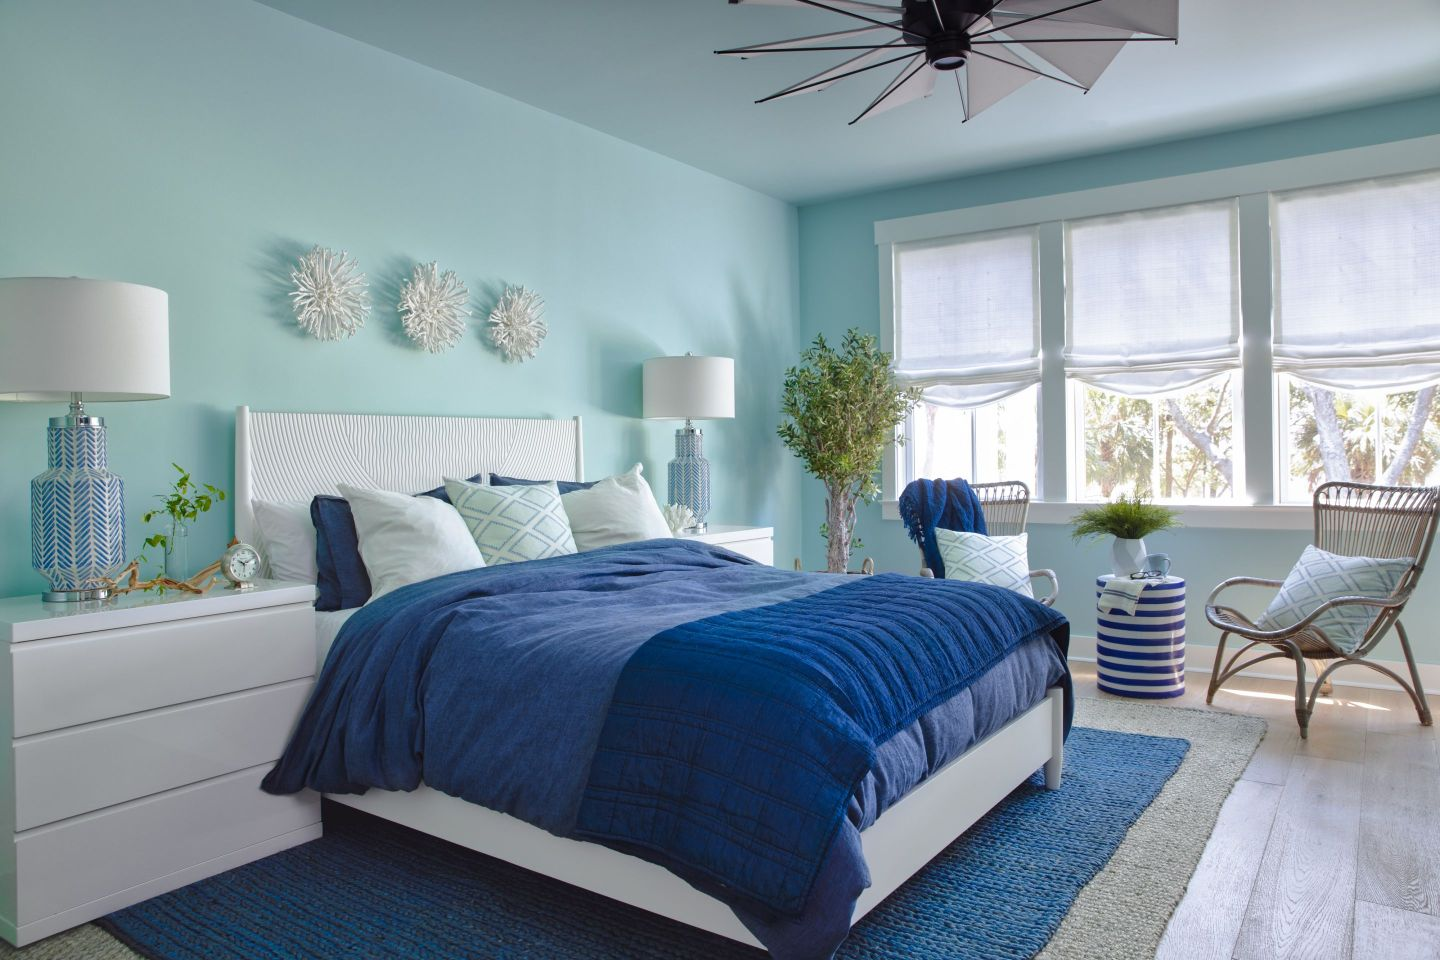 HGTV-Dream-Home-2020-Guest-Bedroom-2 Lowcountry Vacation Home Style in Hilton Head with HGTV Dream Home 2020